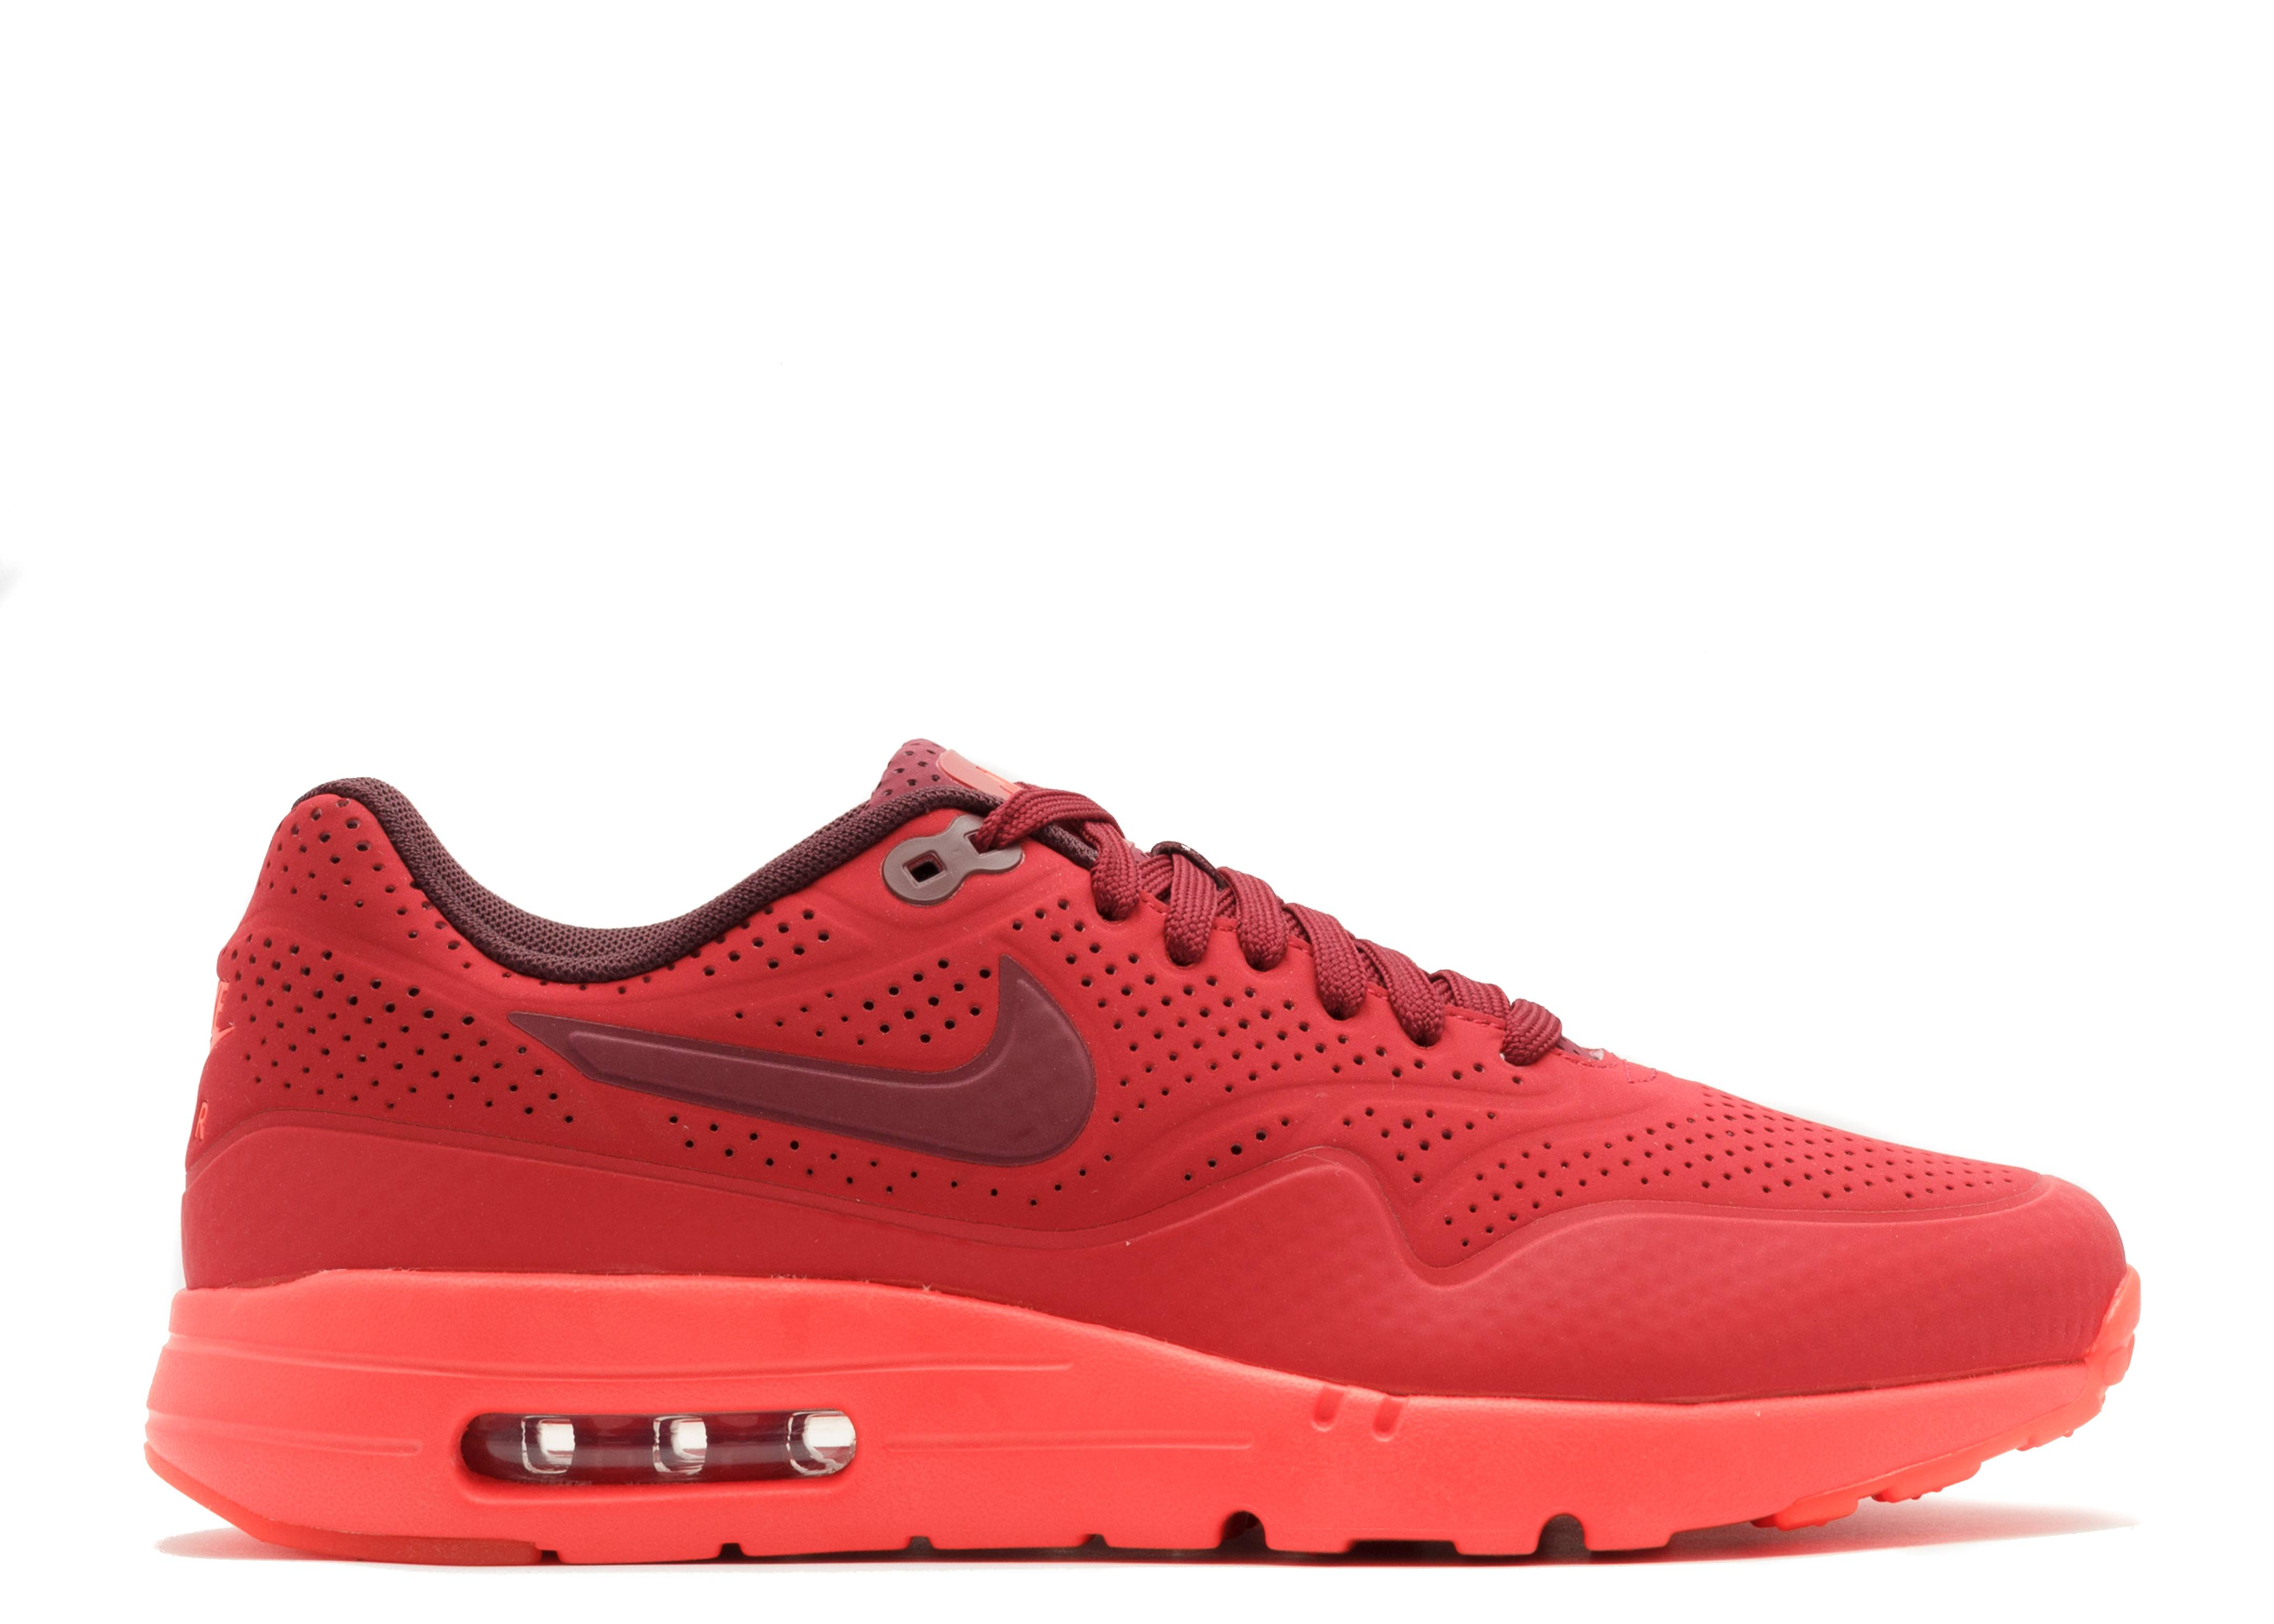 Air Max 1 Ultra Moire - Nike - 705297 600 - gym red team red-unvrsty red  f30d94f75f27